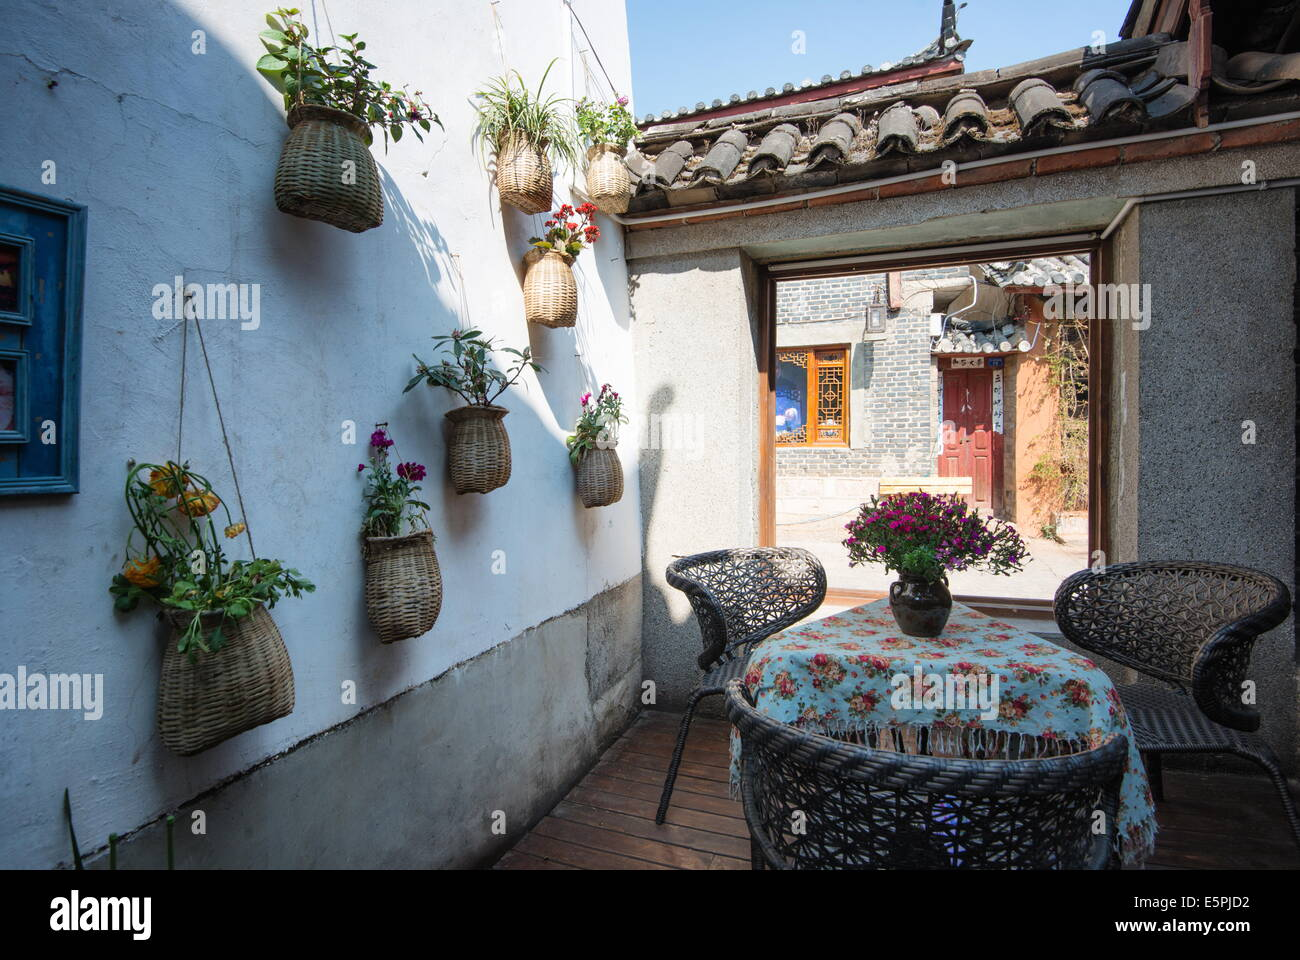 Cafe in Lijiang Old Town, UNESCO World Heritage Site, Lijiang, Yunnan, China, Asia - Stock Image